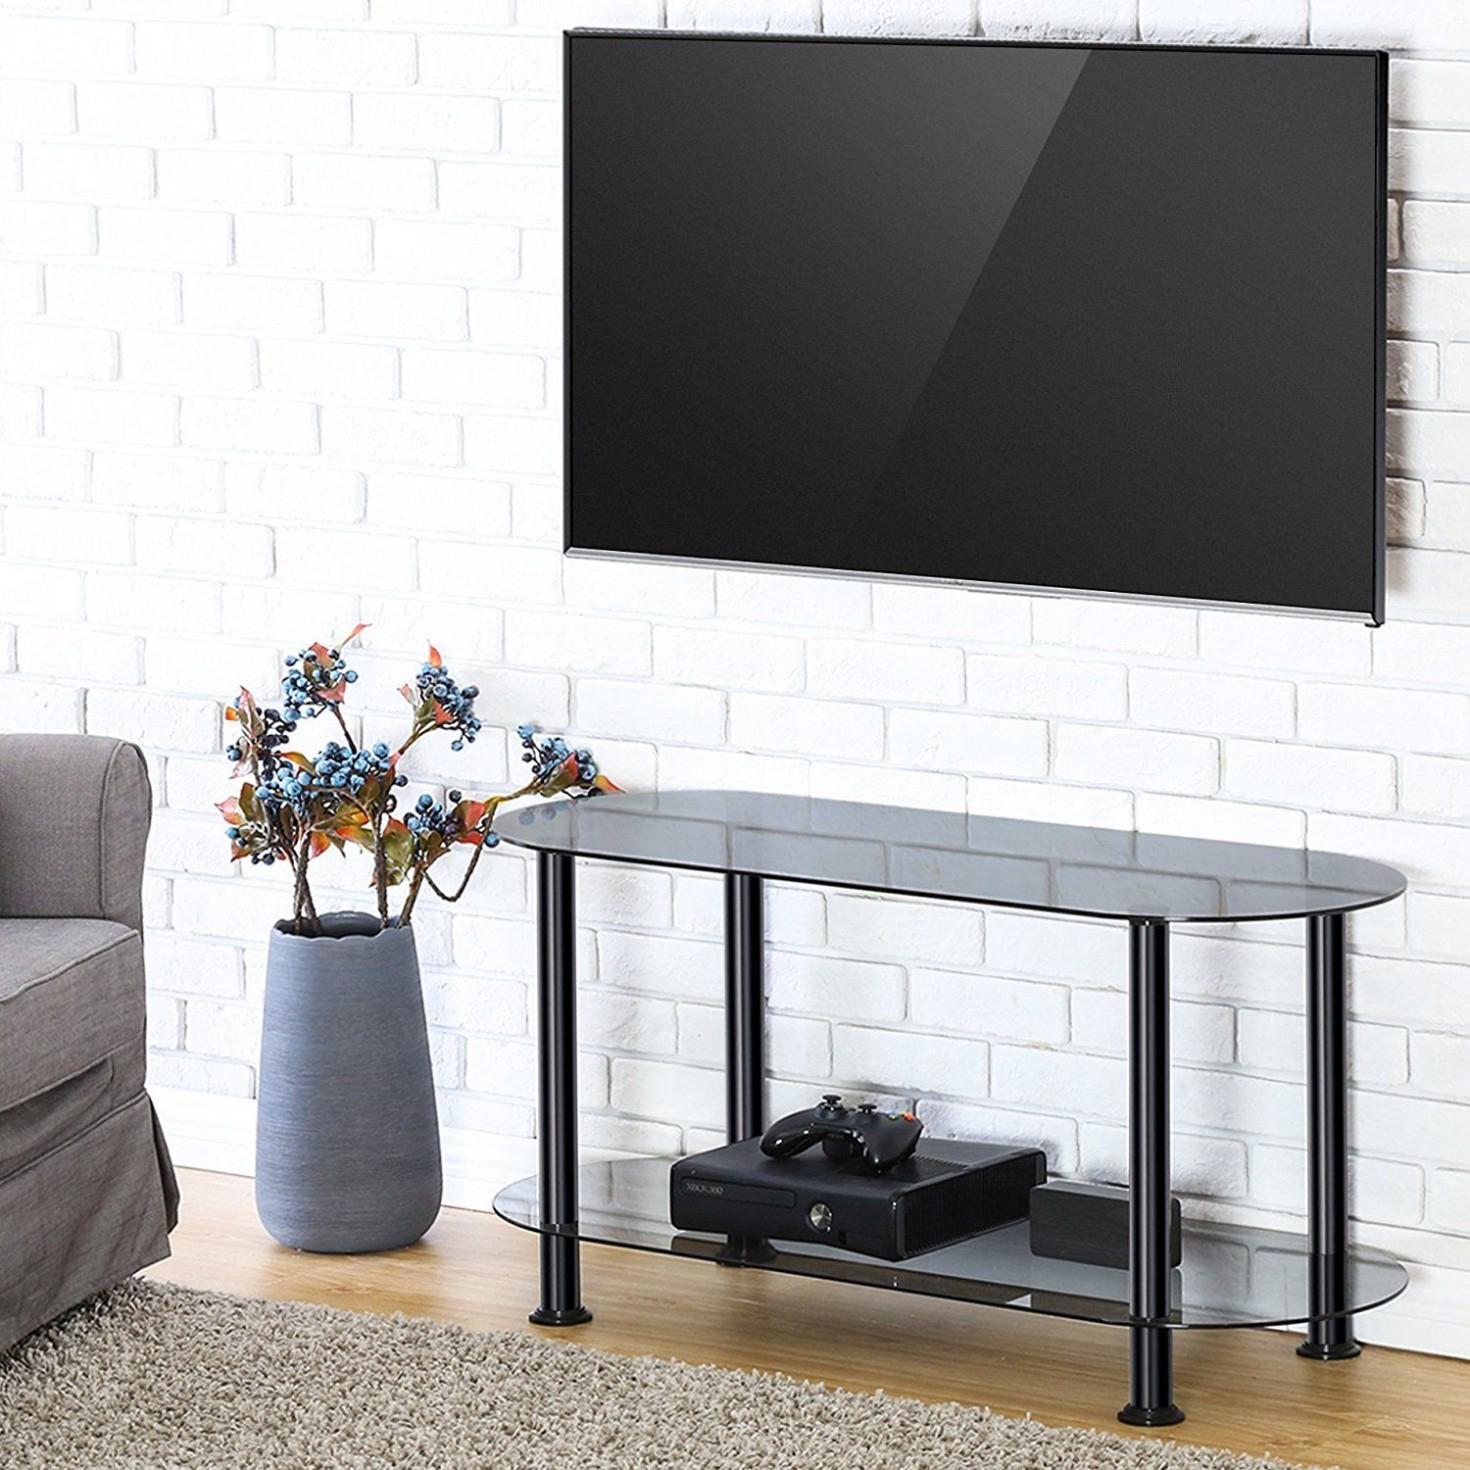 New Classic Grey Tempered Glass Tv Stand Suit For Up To 46 Inch Lcd Regarding Sinclair Grey 74 Inch Tv Stands (View 14 of 30)